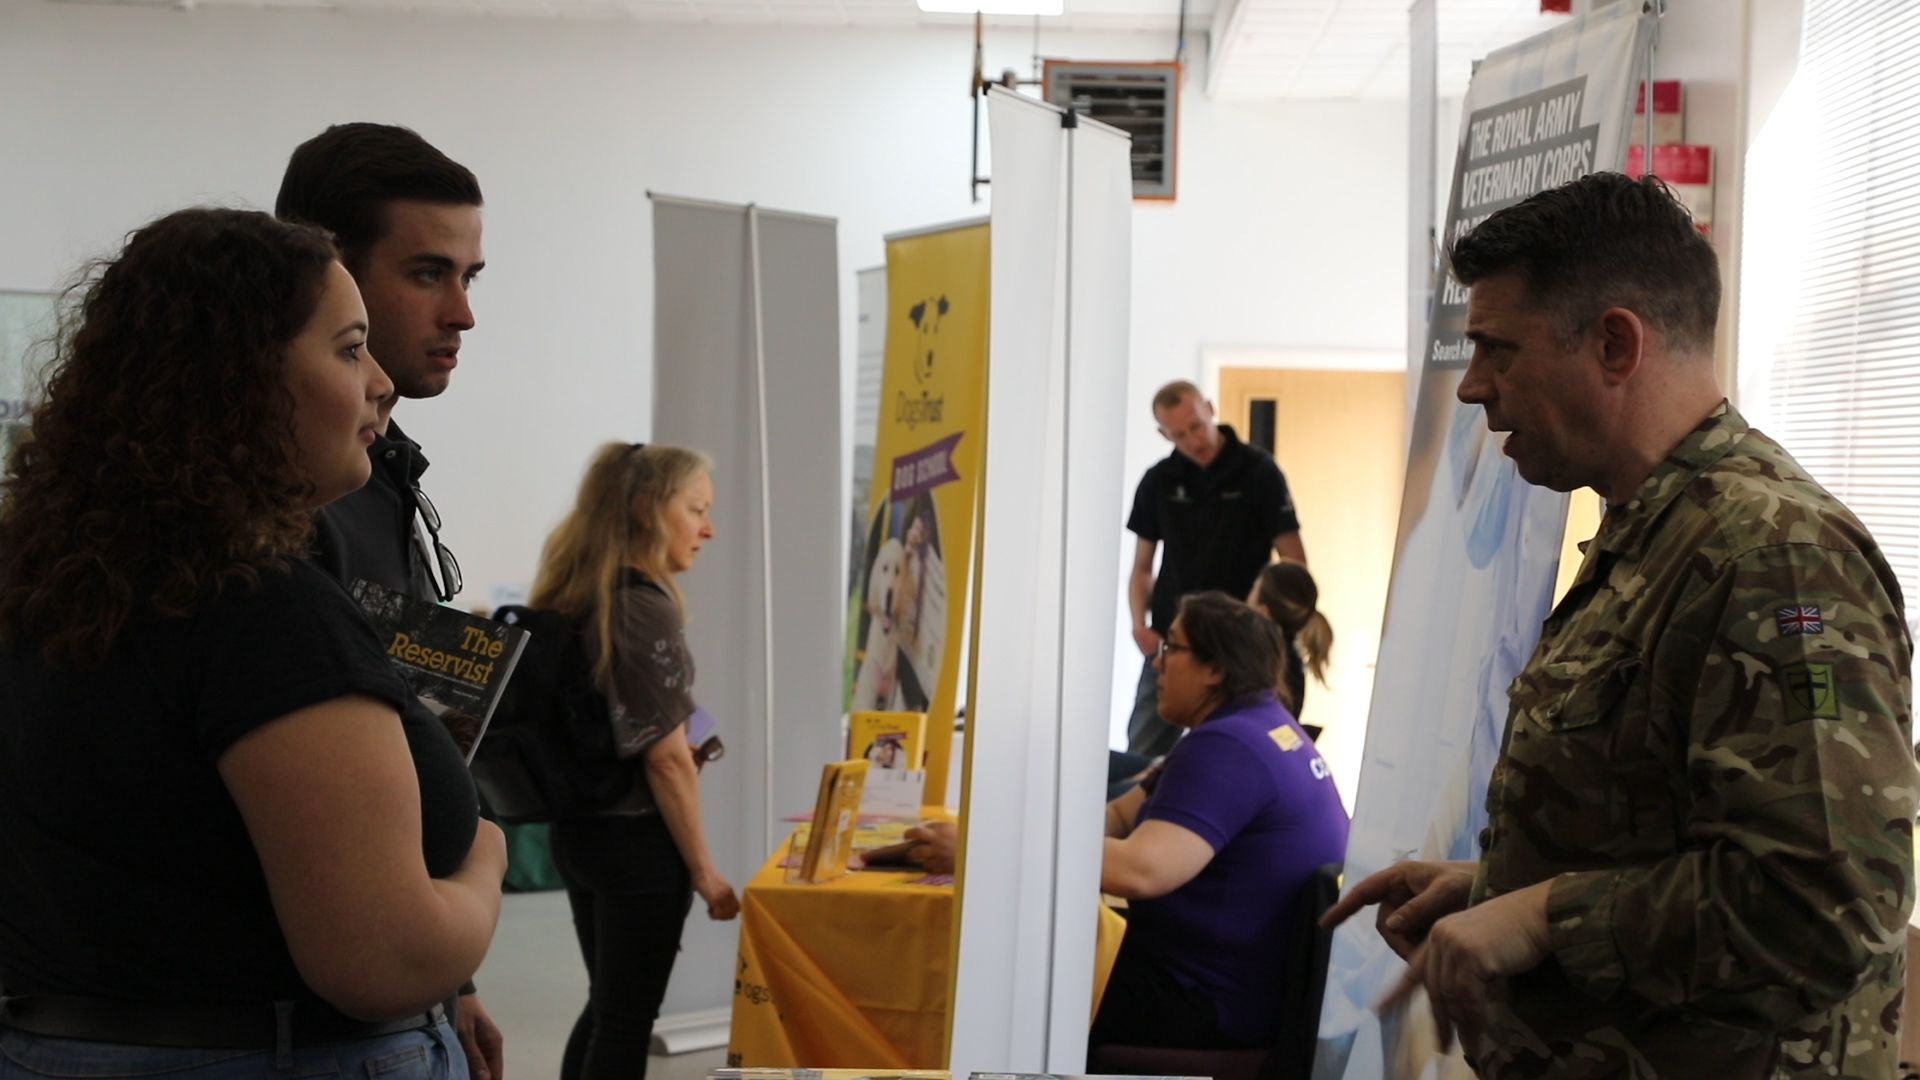 Visitors at Careers With Animals Day speaking to an exhibitor